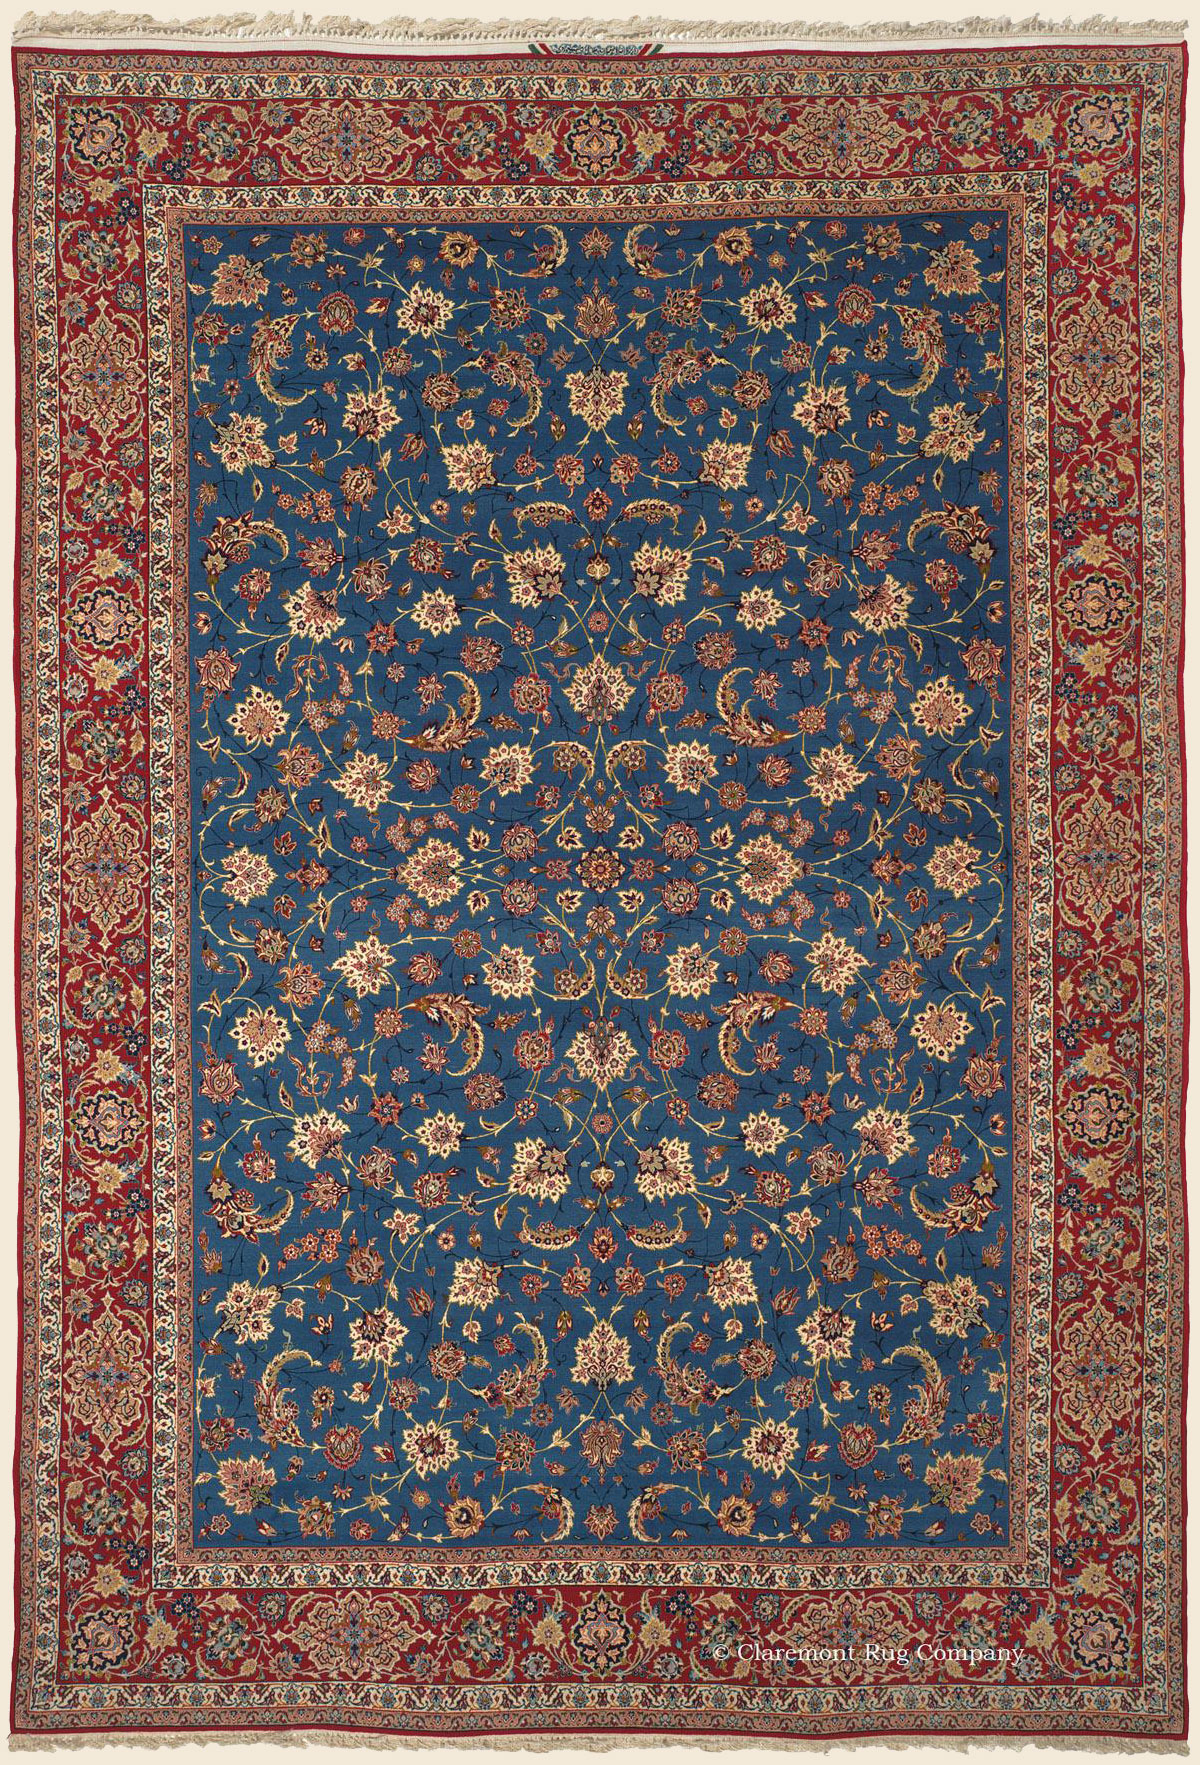 Isfahan Central Persian Antique Rug Claremont Rug Company